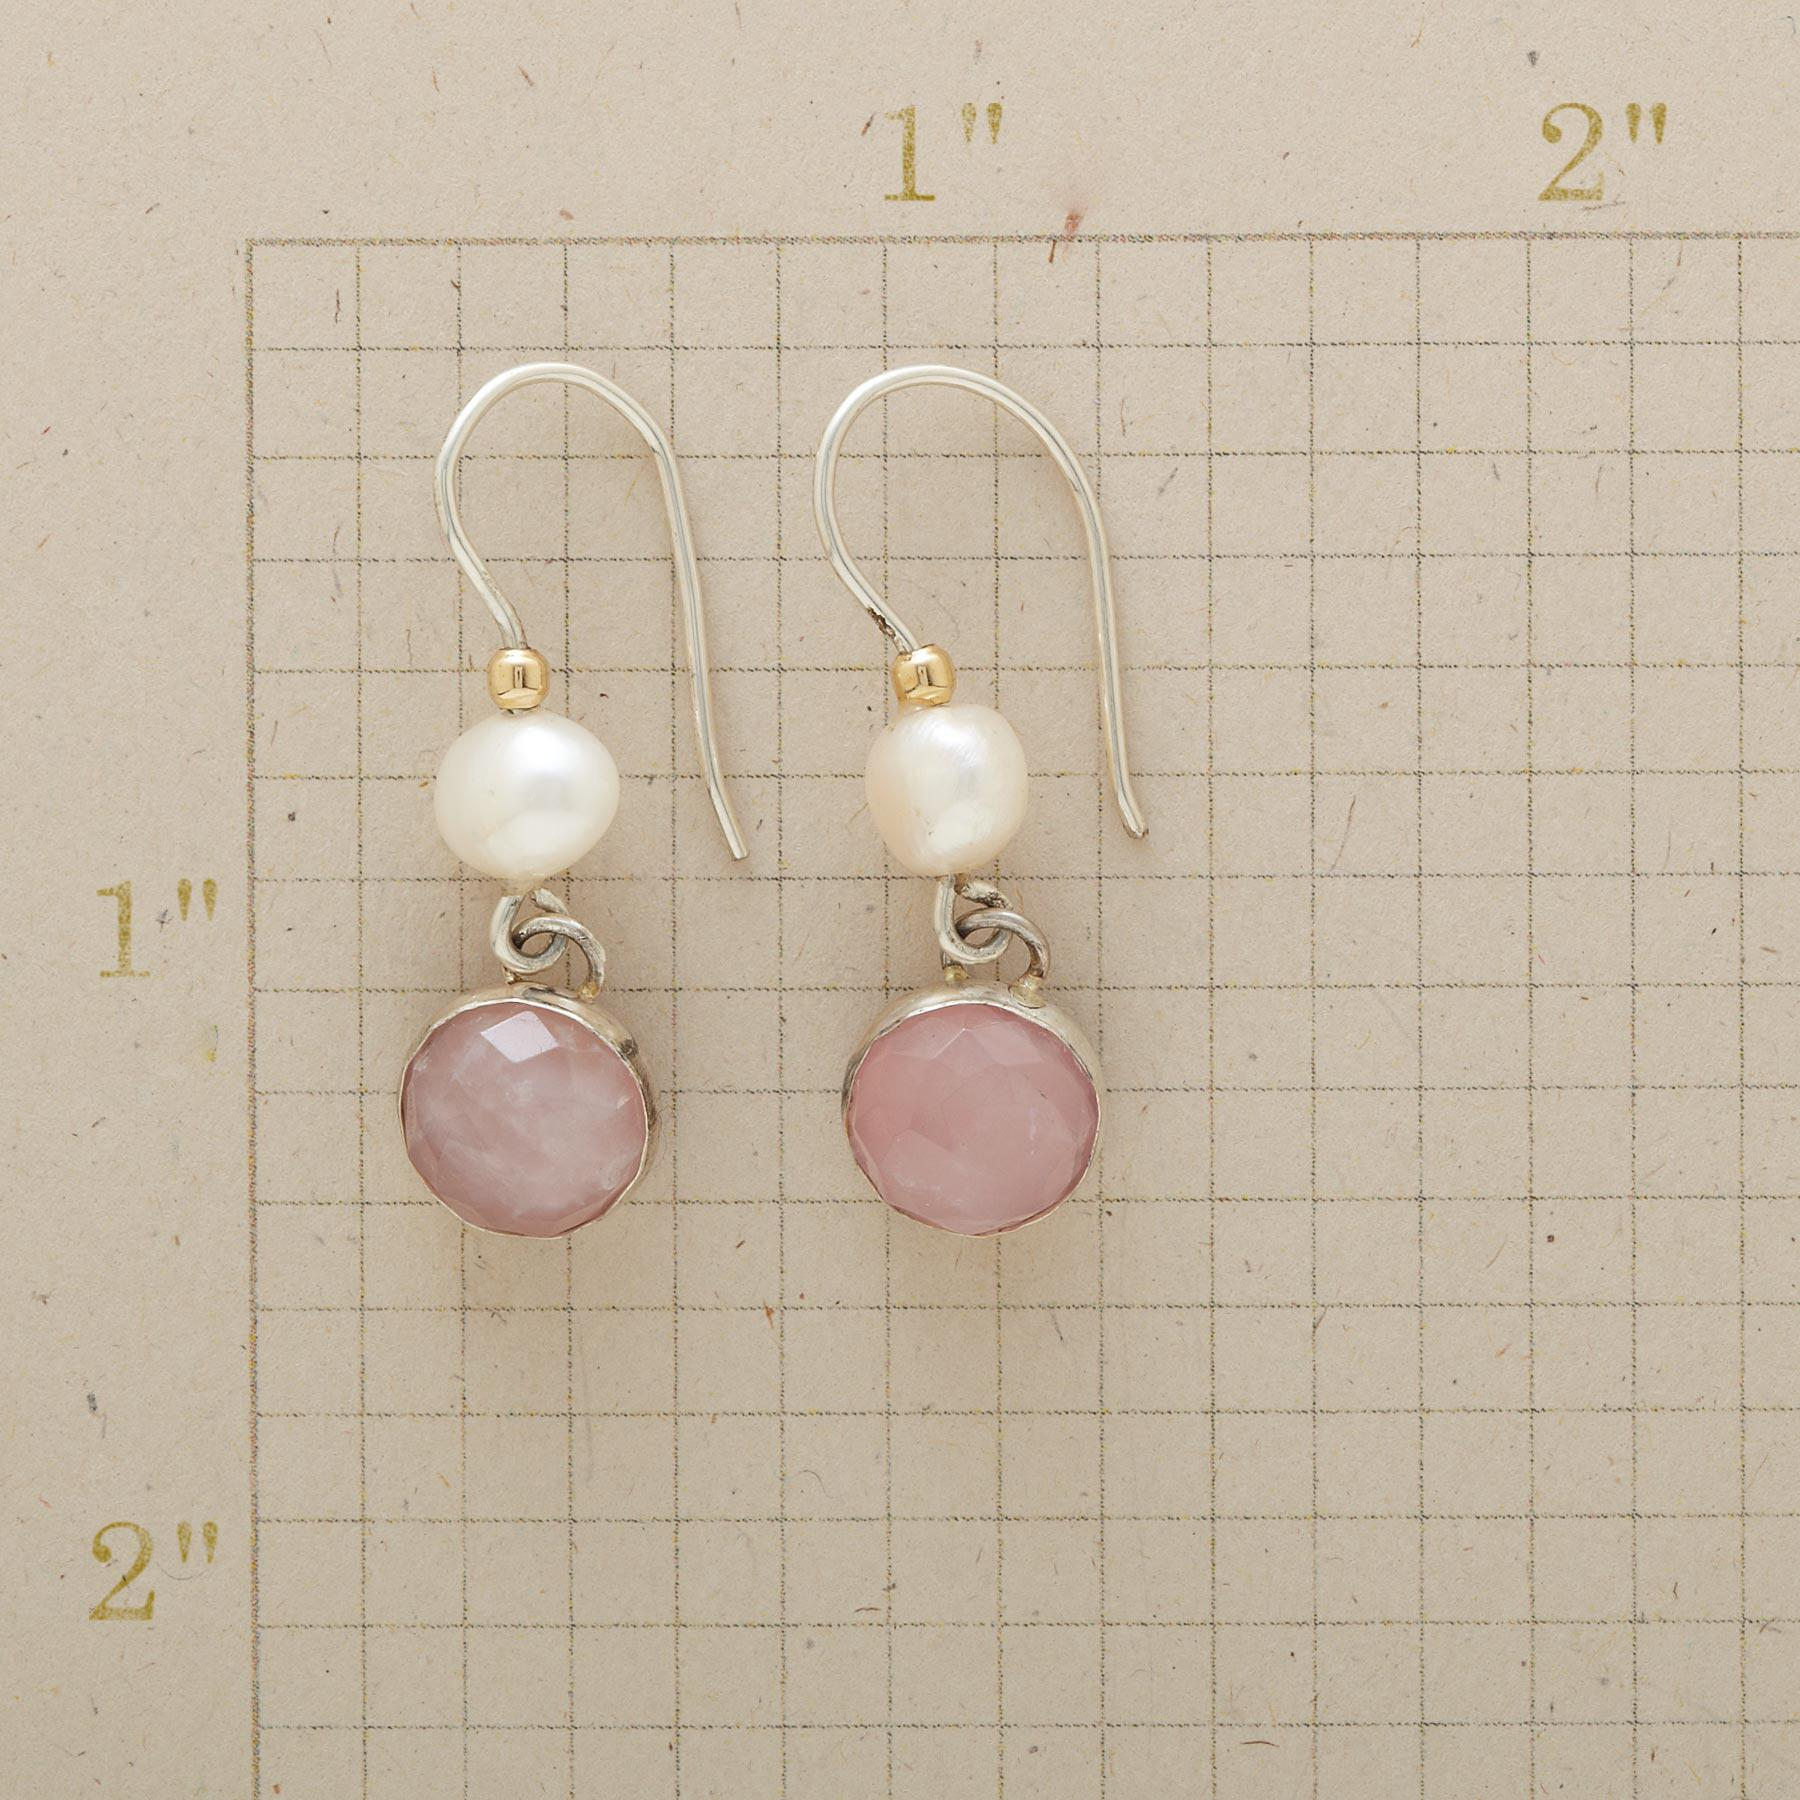 BLUSHING PINK AND PEARL EARRINGS : View 2